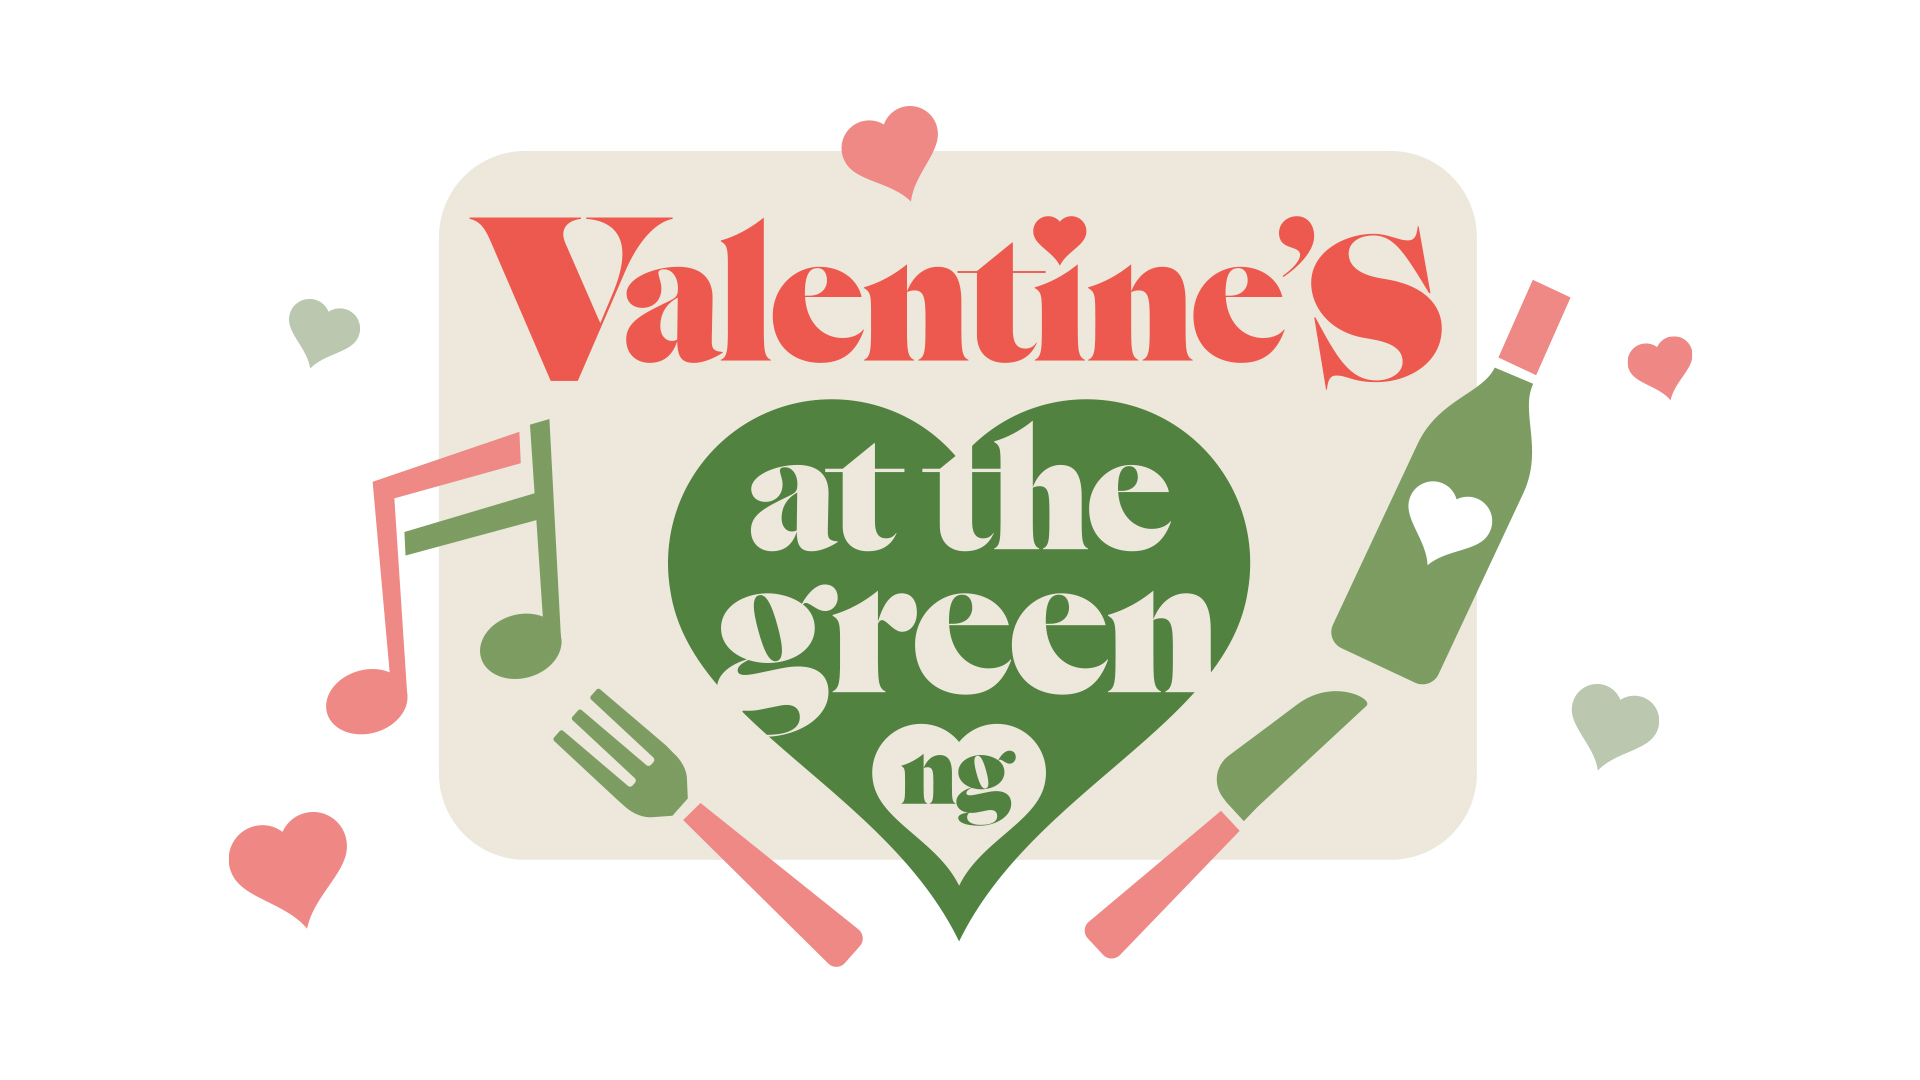 Norwood Green celebrates living close to the heart on Valentine's Day